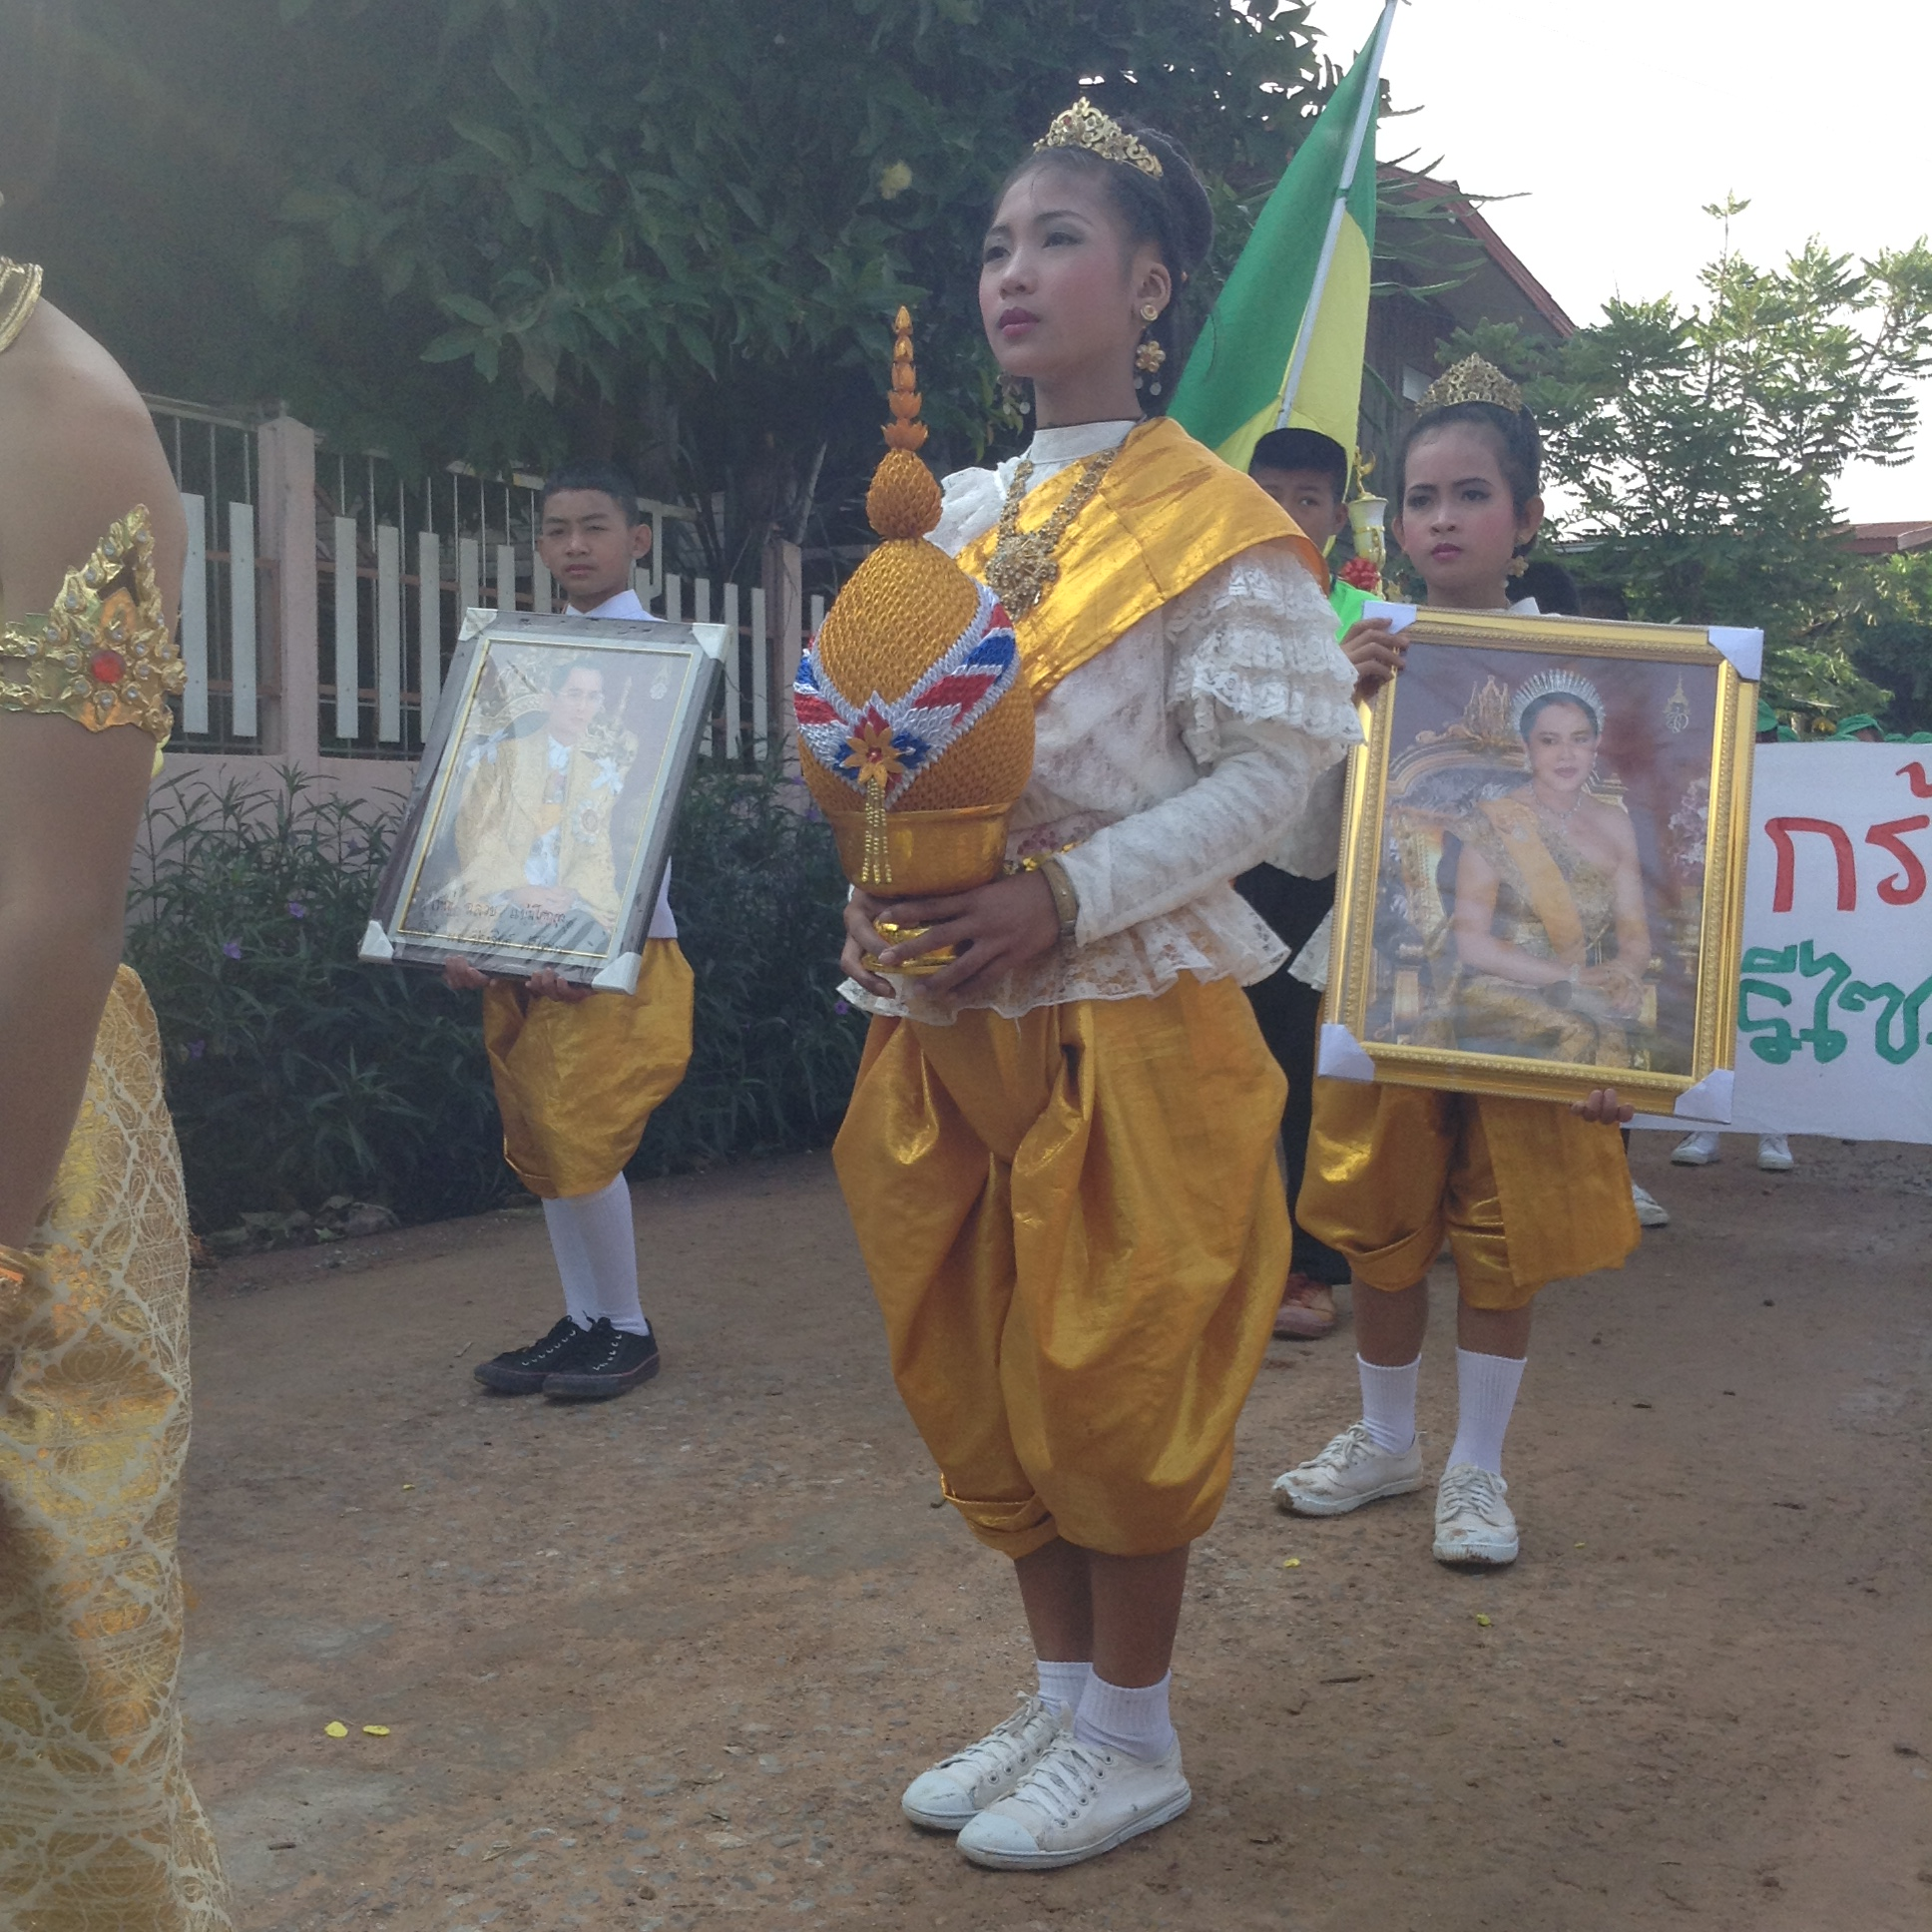 young thai children wearing traditional clothing carrying pictures of the thai king and queen